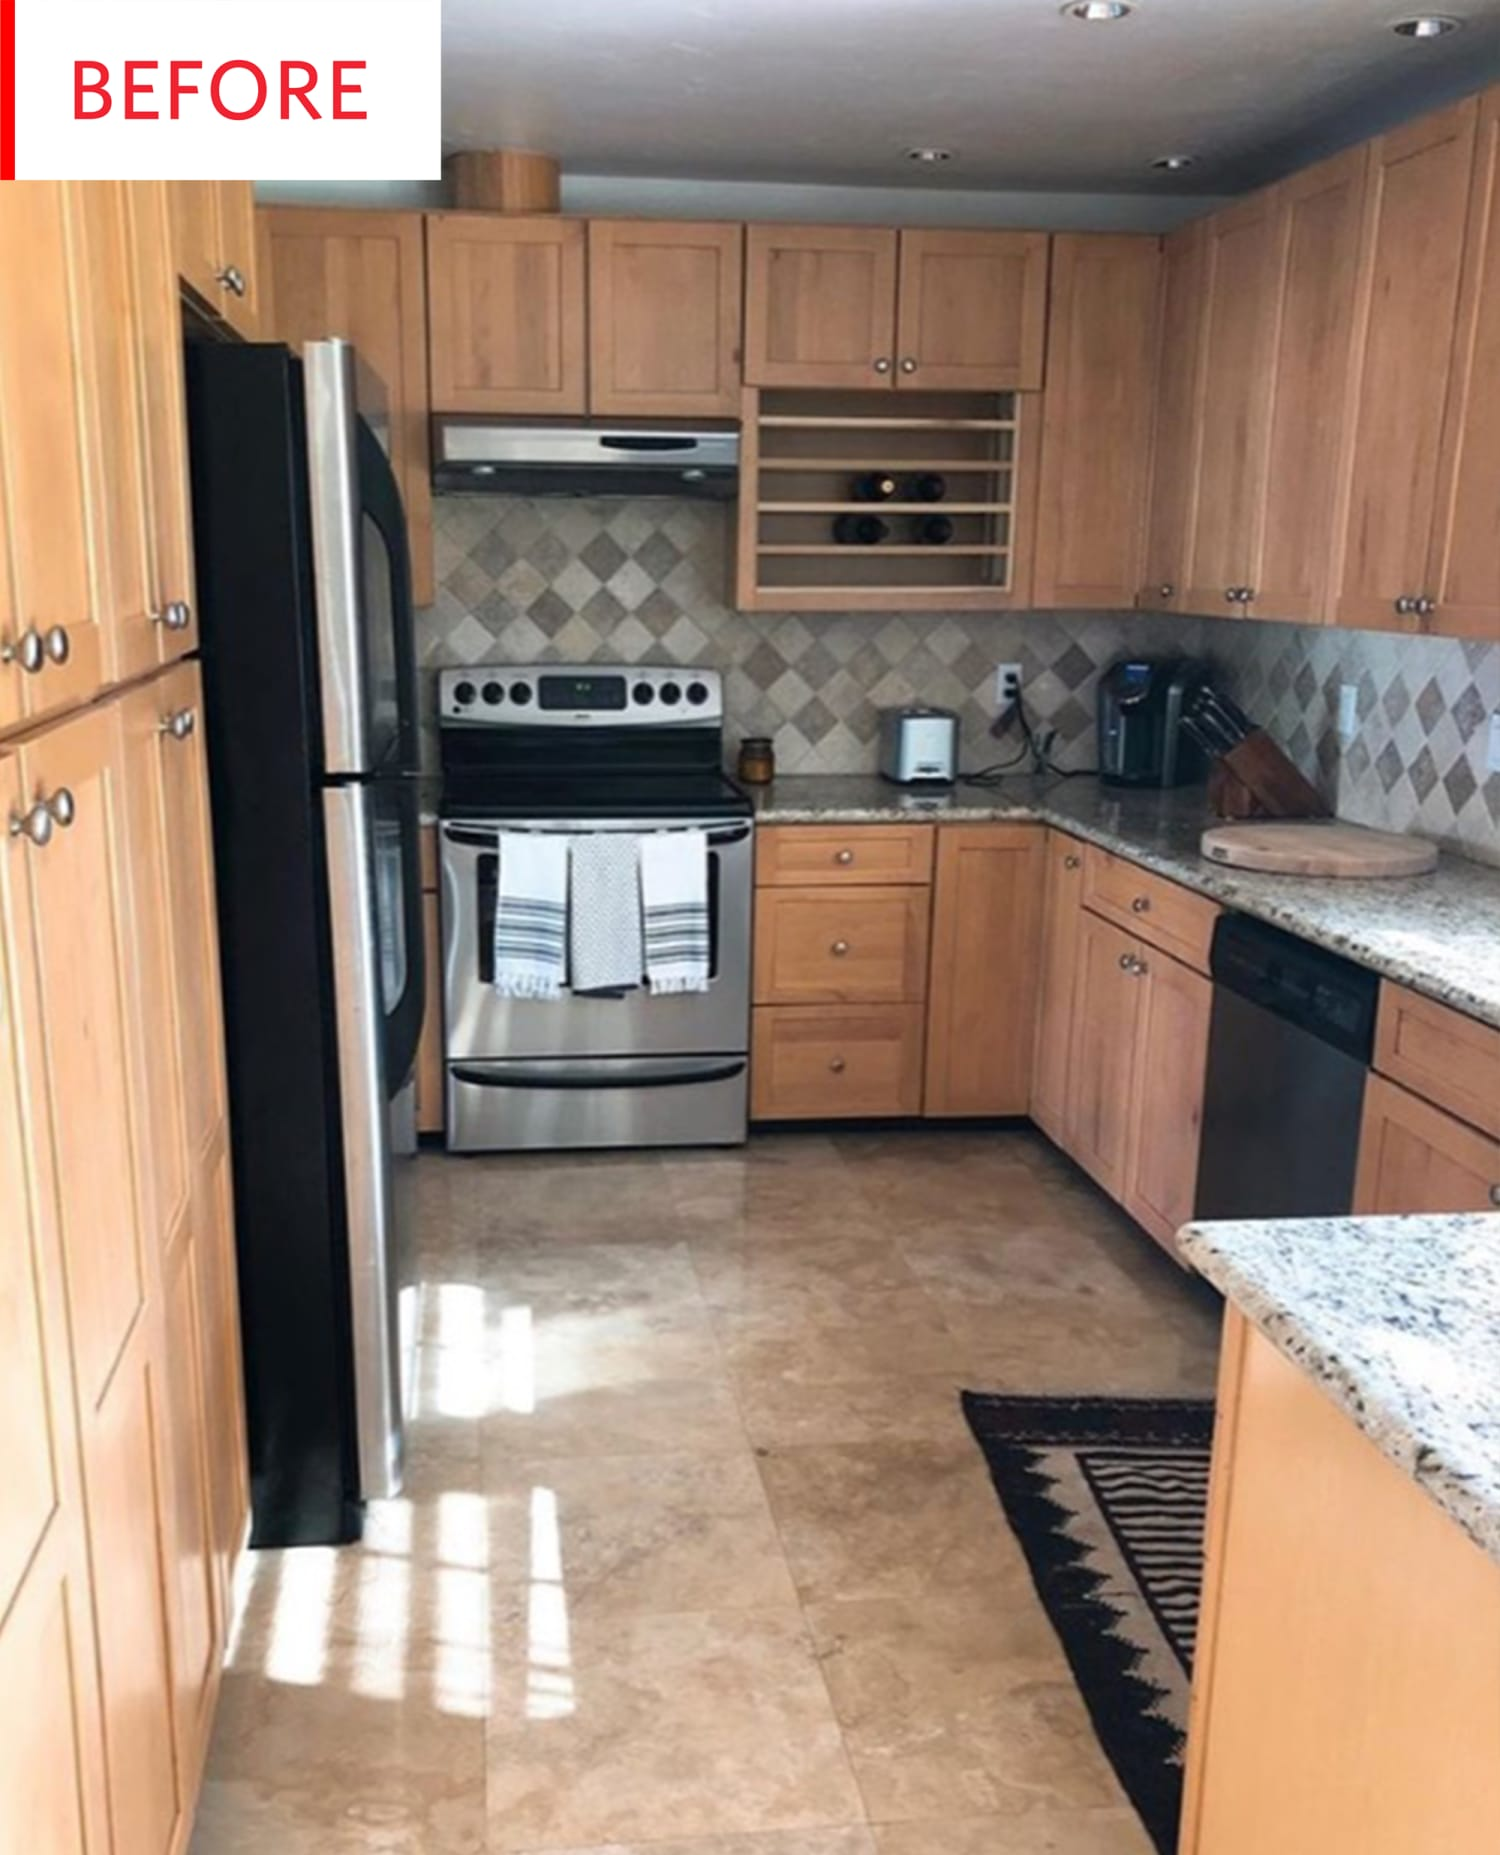 This Kitchen Was Terrifically Transformed for Only $900